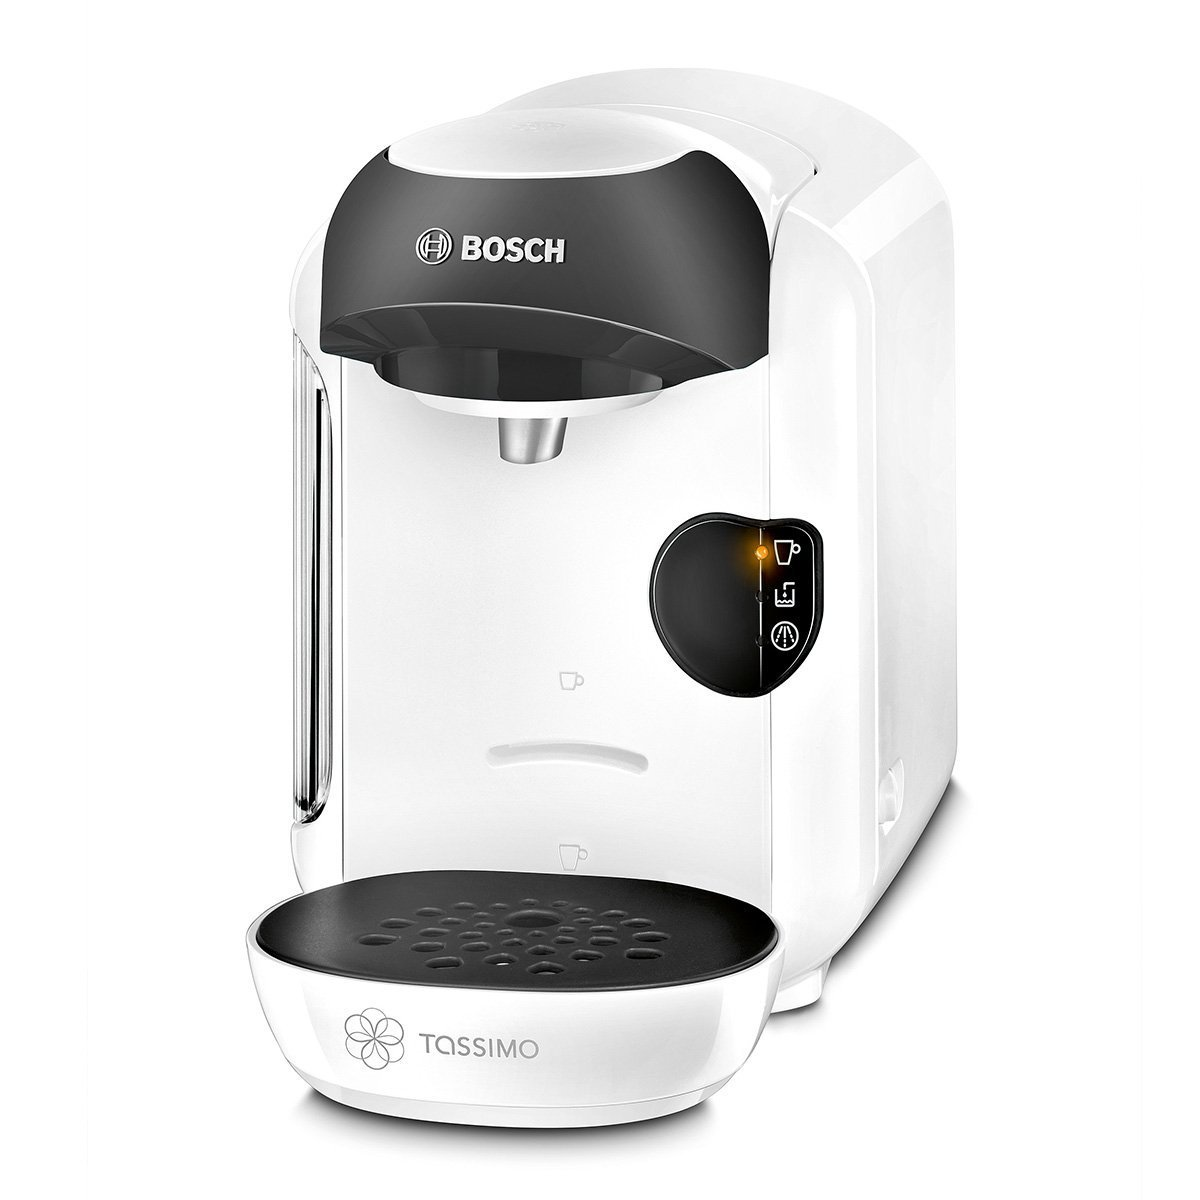 Portable Tassimo Coffee Maker : Bosch Tassimo Vivy T12 Coffee Hot Chocolate Tea Pods Cappuccino Machine Drinks eBay